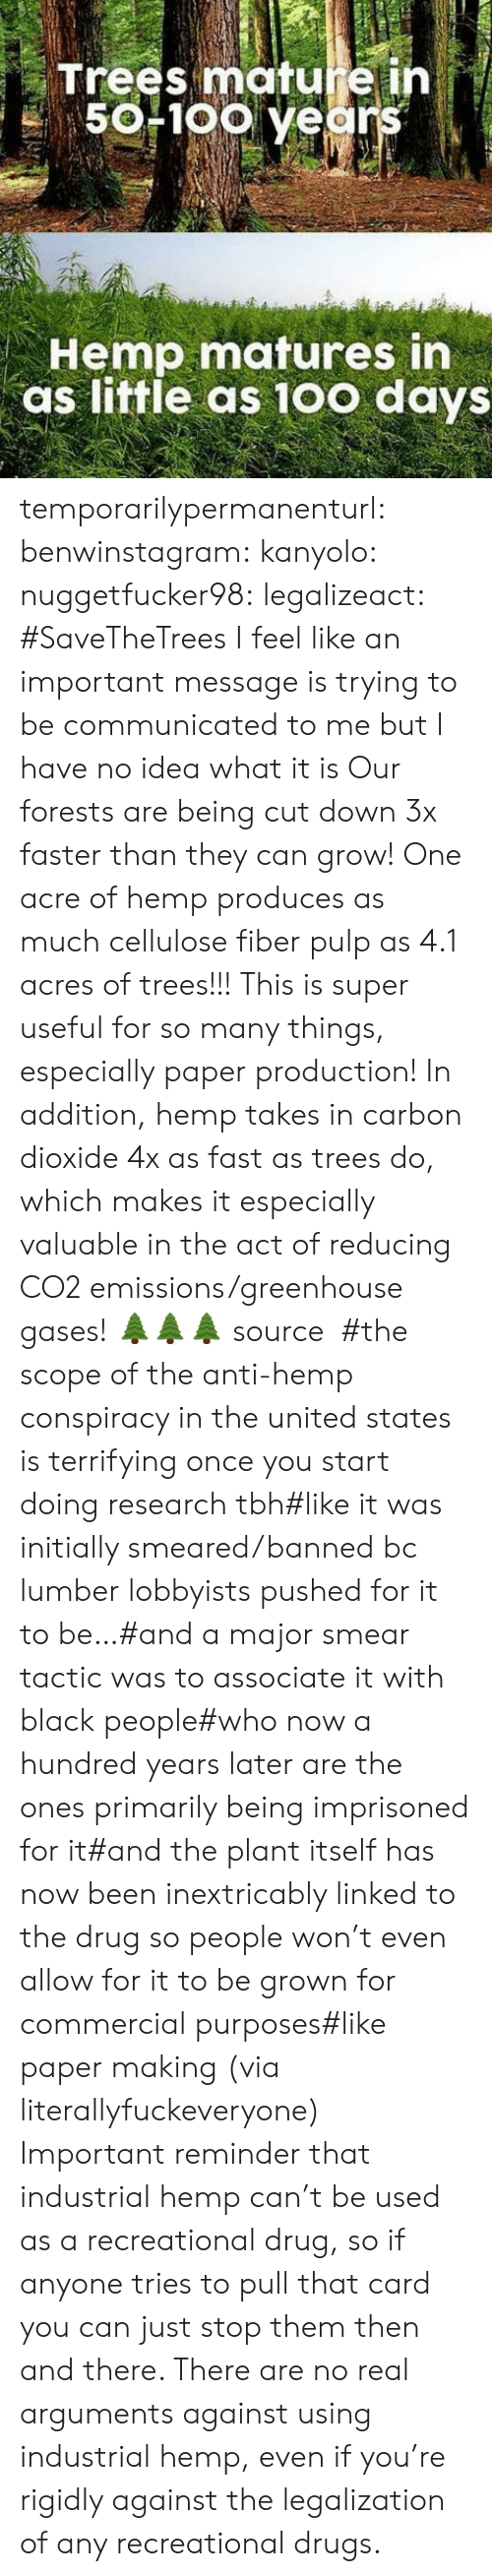 carbon dioxide: Trees mature ih  50F1oo years  Hemp matures in  as little as 10o days temporarilypermanenturl:  benwinstagram:  kanyolo:  nuggetfucker98:  legalizeact:  #SaveTheTrees  I feel like an important message is trying to be communicated to me but I have no idea what it is  Our forests are being cut down 3x faster than they can grow! One acre of hemp produces as much cellulose fiber pulp as 4.1 acres of trees!!! This is super useful for so many things, especially paper production! In addition, hemp takes in carbon dioxide 4x as fast as trees do, which makes it especially valuable in the act of reducing CO2 emissions/greenhouse gases! 🌲🌲🌲source  #the scope of the anti-hemp conspiracy in the united states is terrifying once you start doing research tbh#like it was initially smeared/banned bc lumber lobbyists pushed for it to be…#and a major smear tactic was to associate it with black people#who now a hundred years later are the ones primarily being imprisoned for it#and the plant itself has now been inextricably linked to the drug so people won't even allow for it to be grown for commercial purposes#like paper making(via literallyfuckeveryone)   Important reminder that industrial hemp can't be used as a recreational drug, so if anyone tries to pull that card you can just stop them then and there. There are no real arguments against using industrial hemp, even if you're rigidly against the legalization of any recreational drugs.